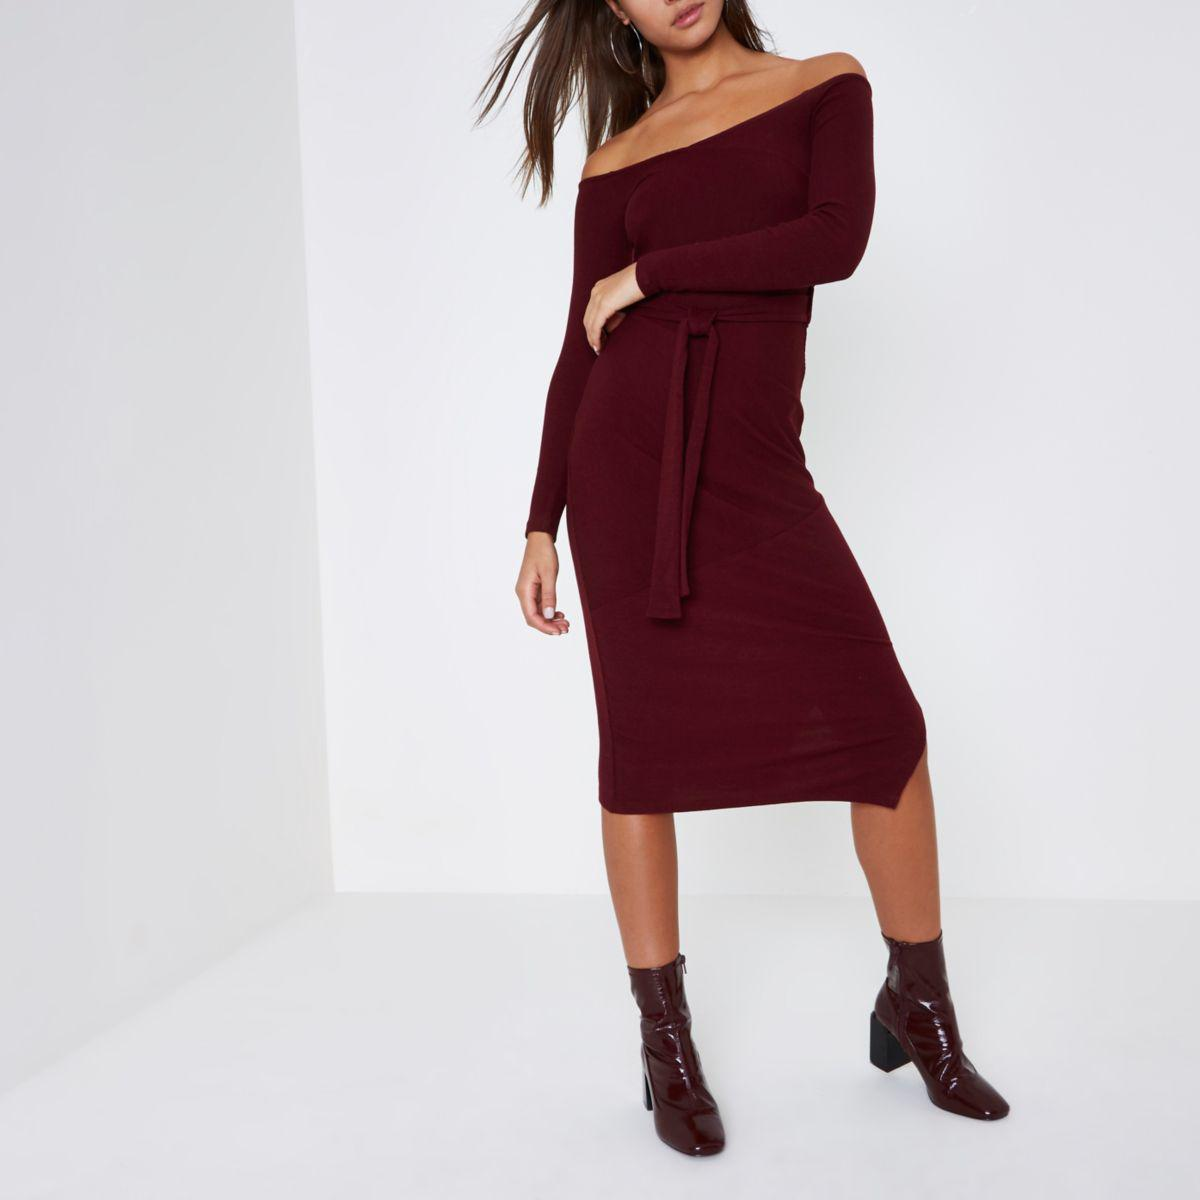 0cd11d68 Gallery. Previously sold at: River Island · Women's Burgundy Dresses